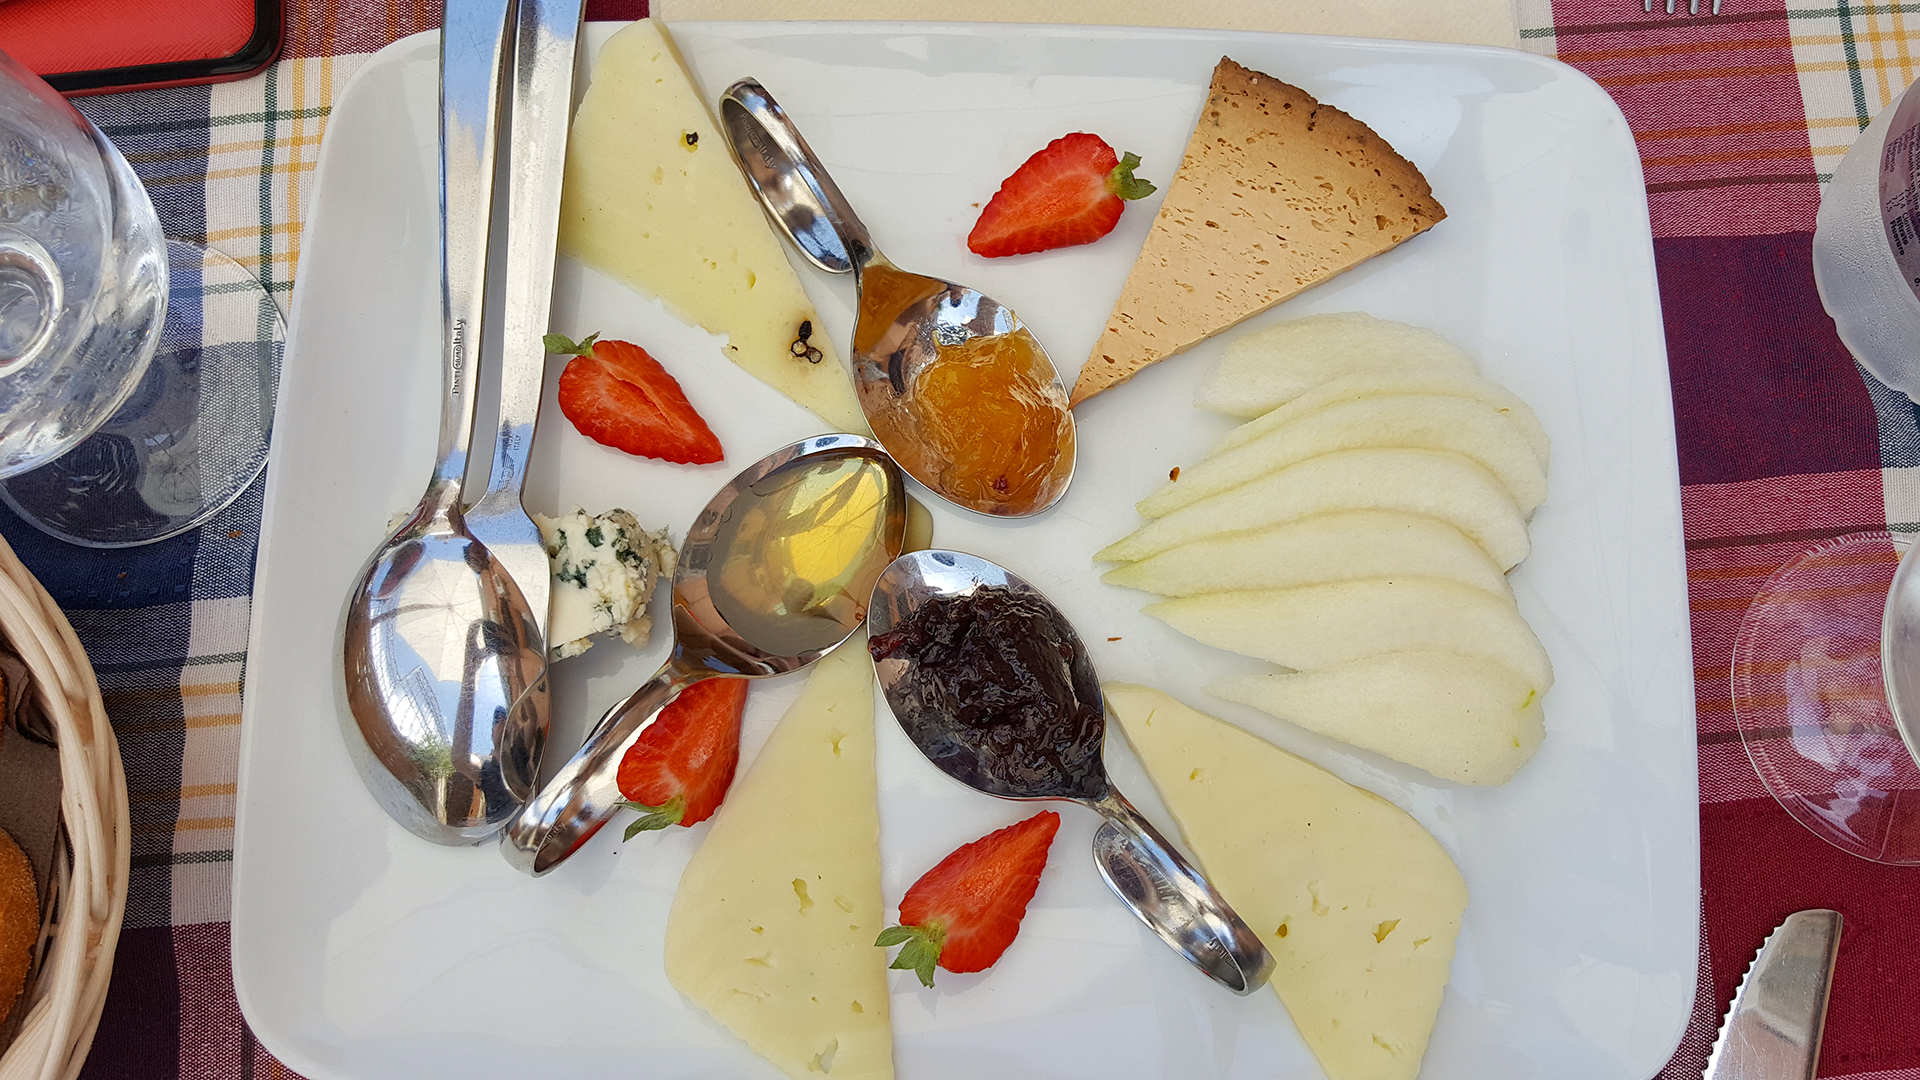 That Cheese Plate